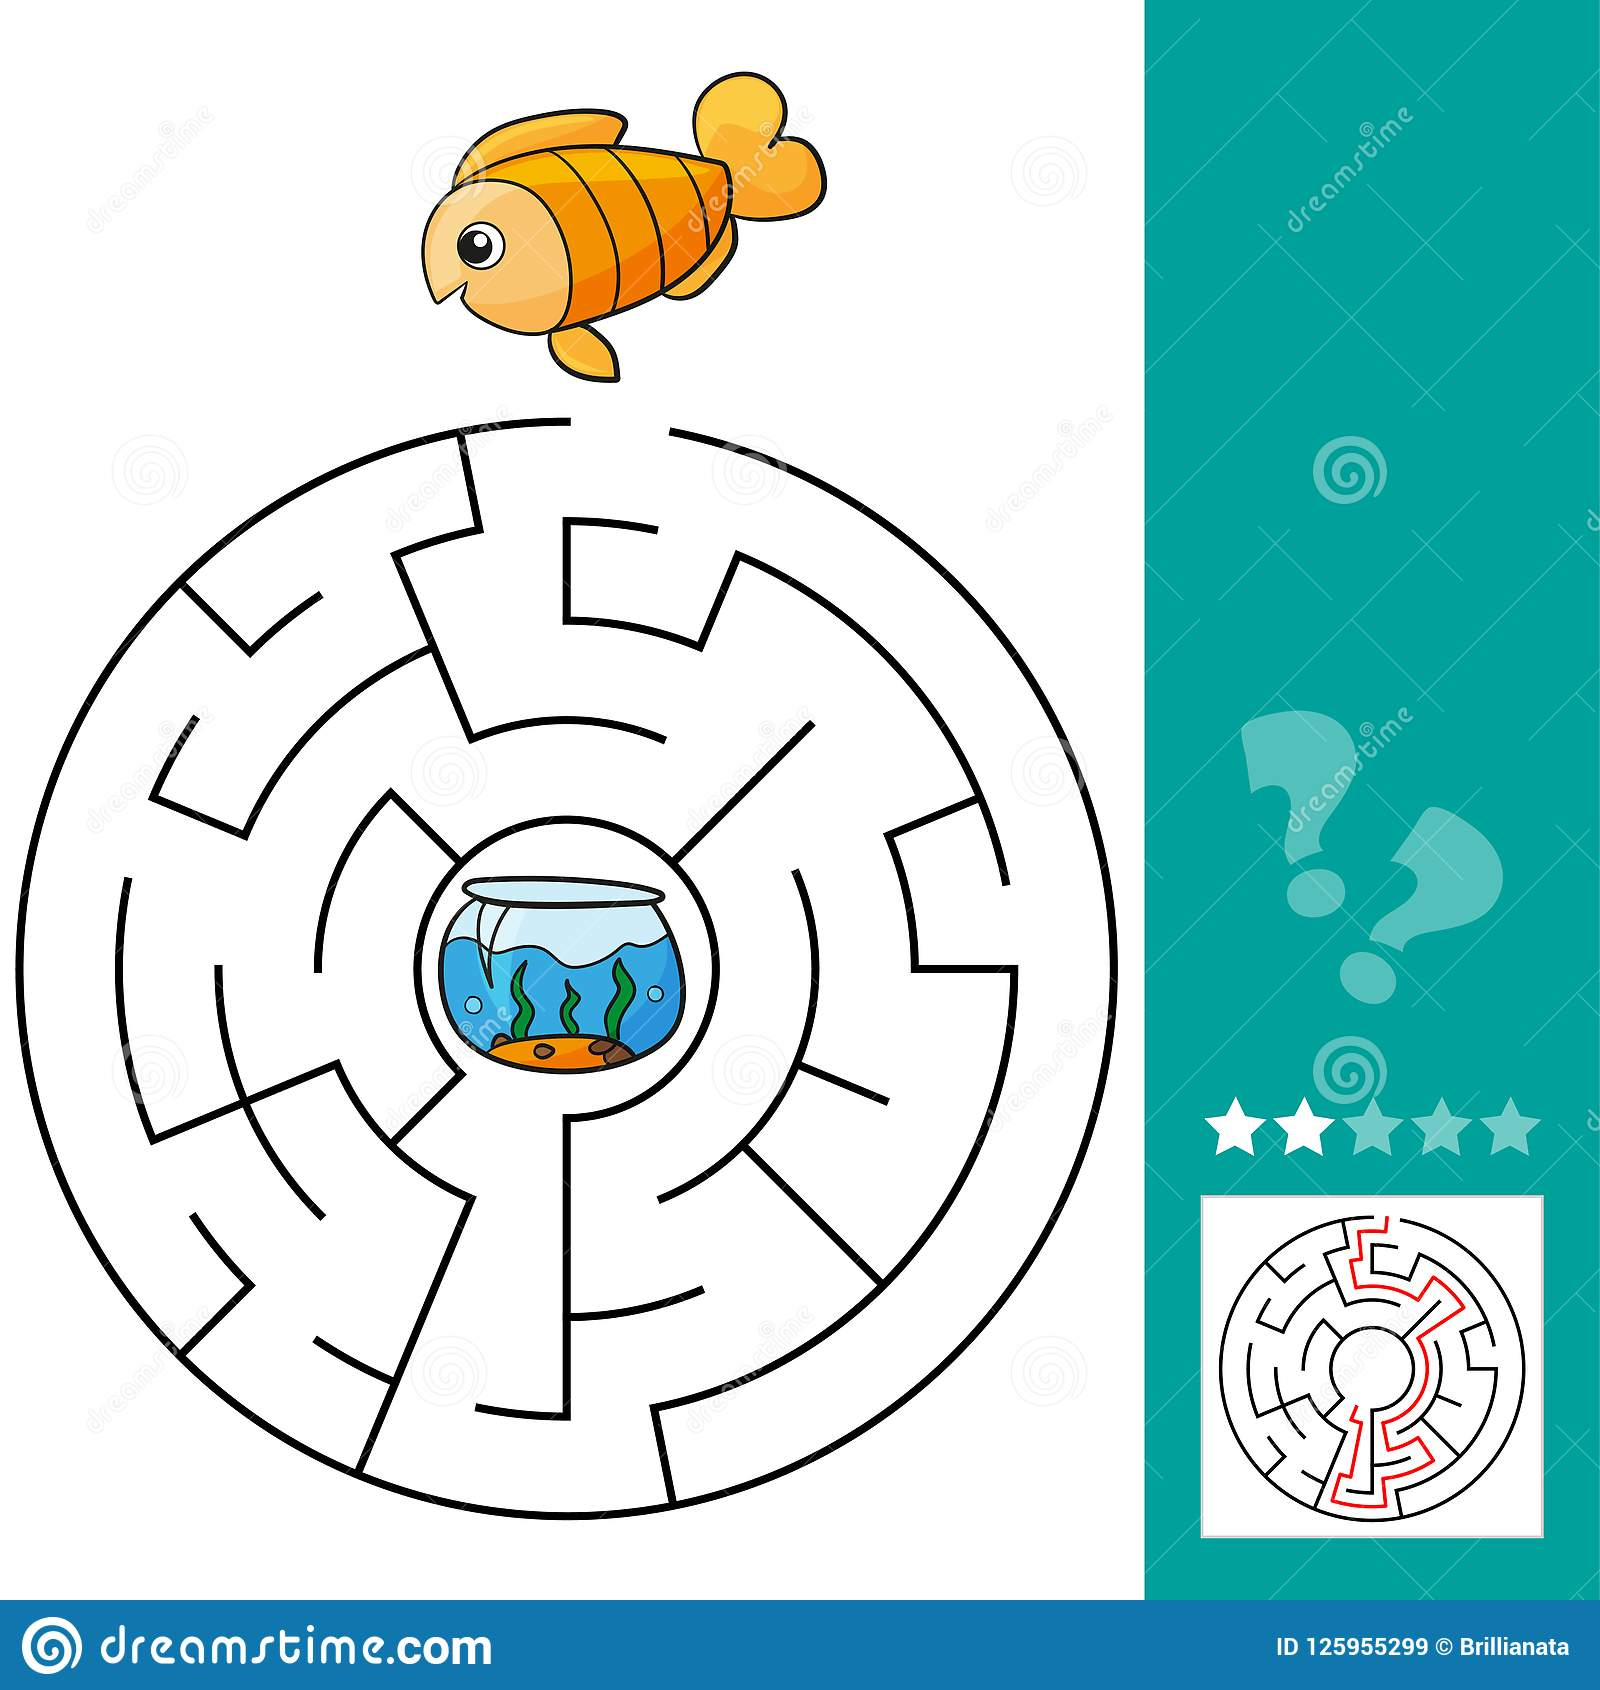 Cute Fish Educational Maze Game Vector Illustration Of